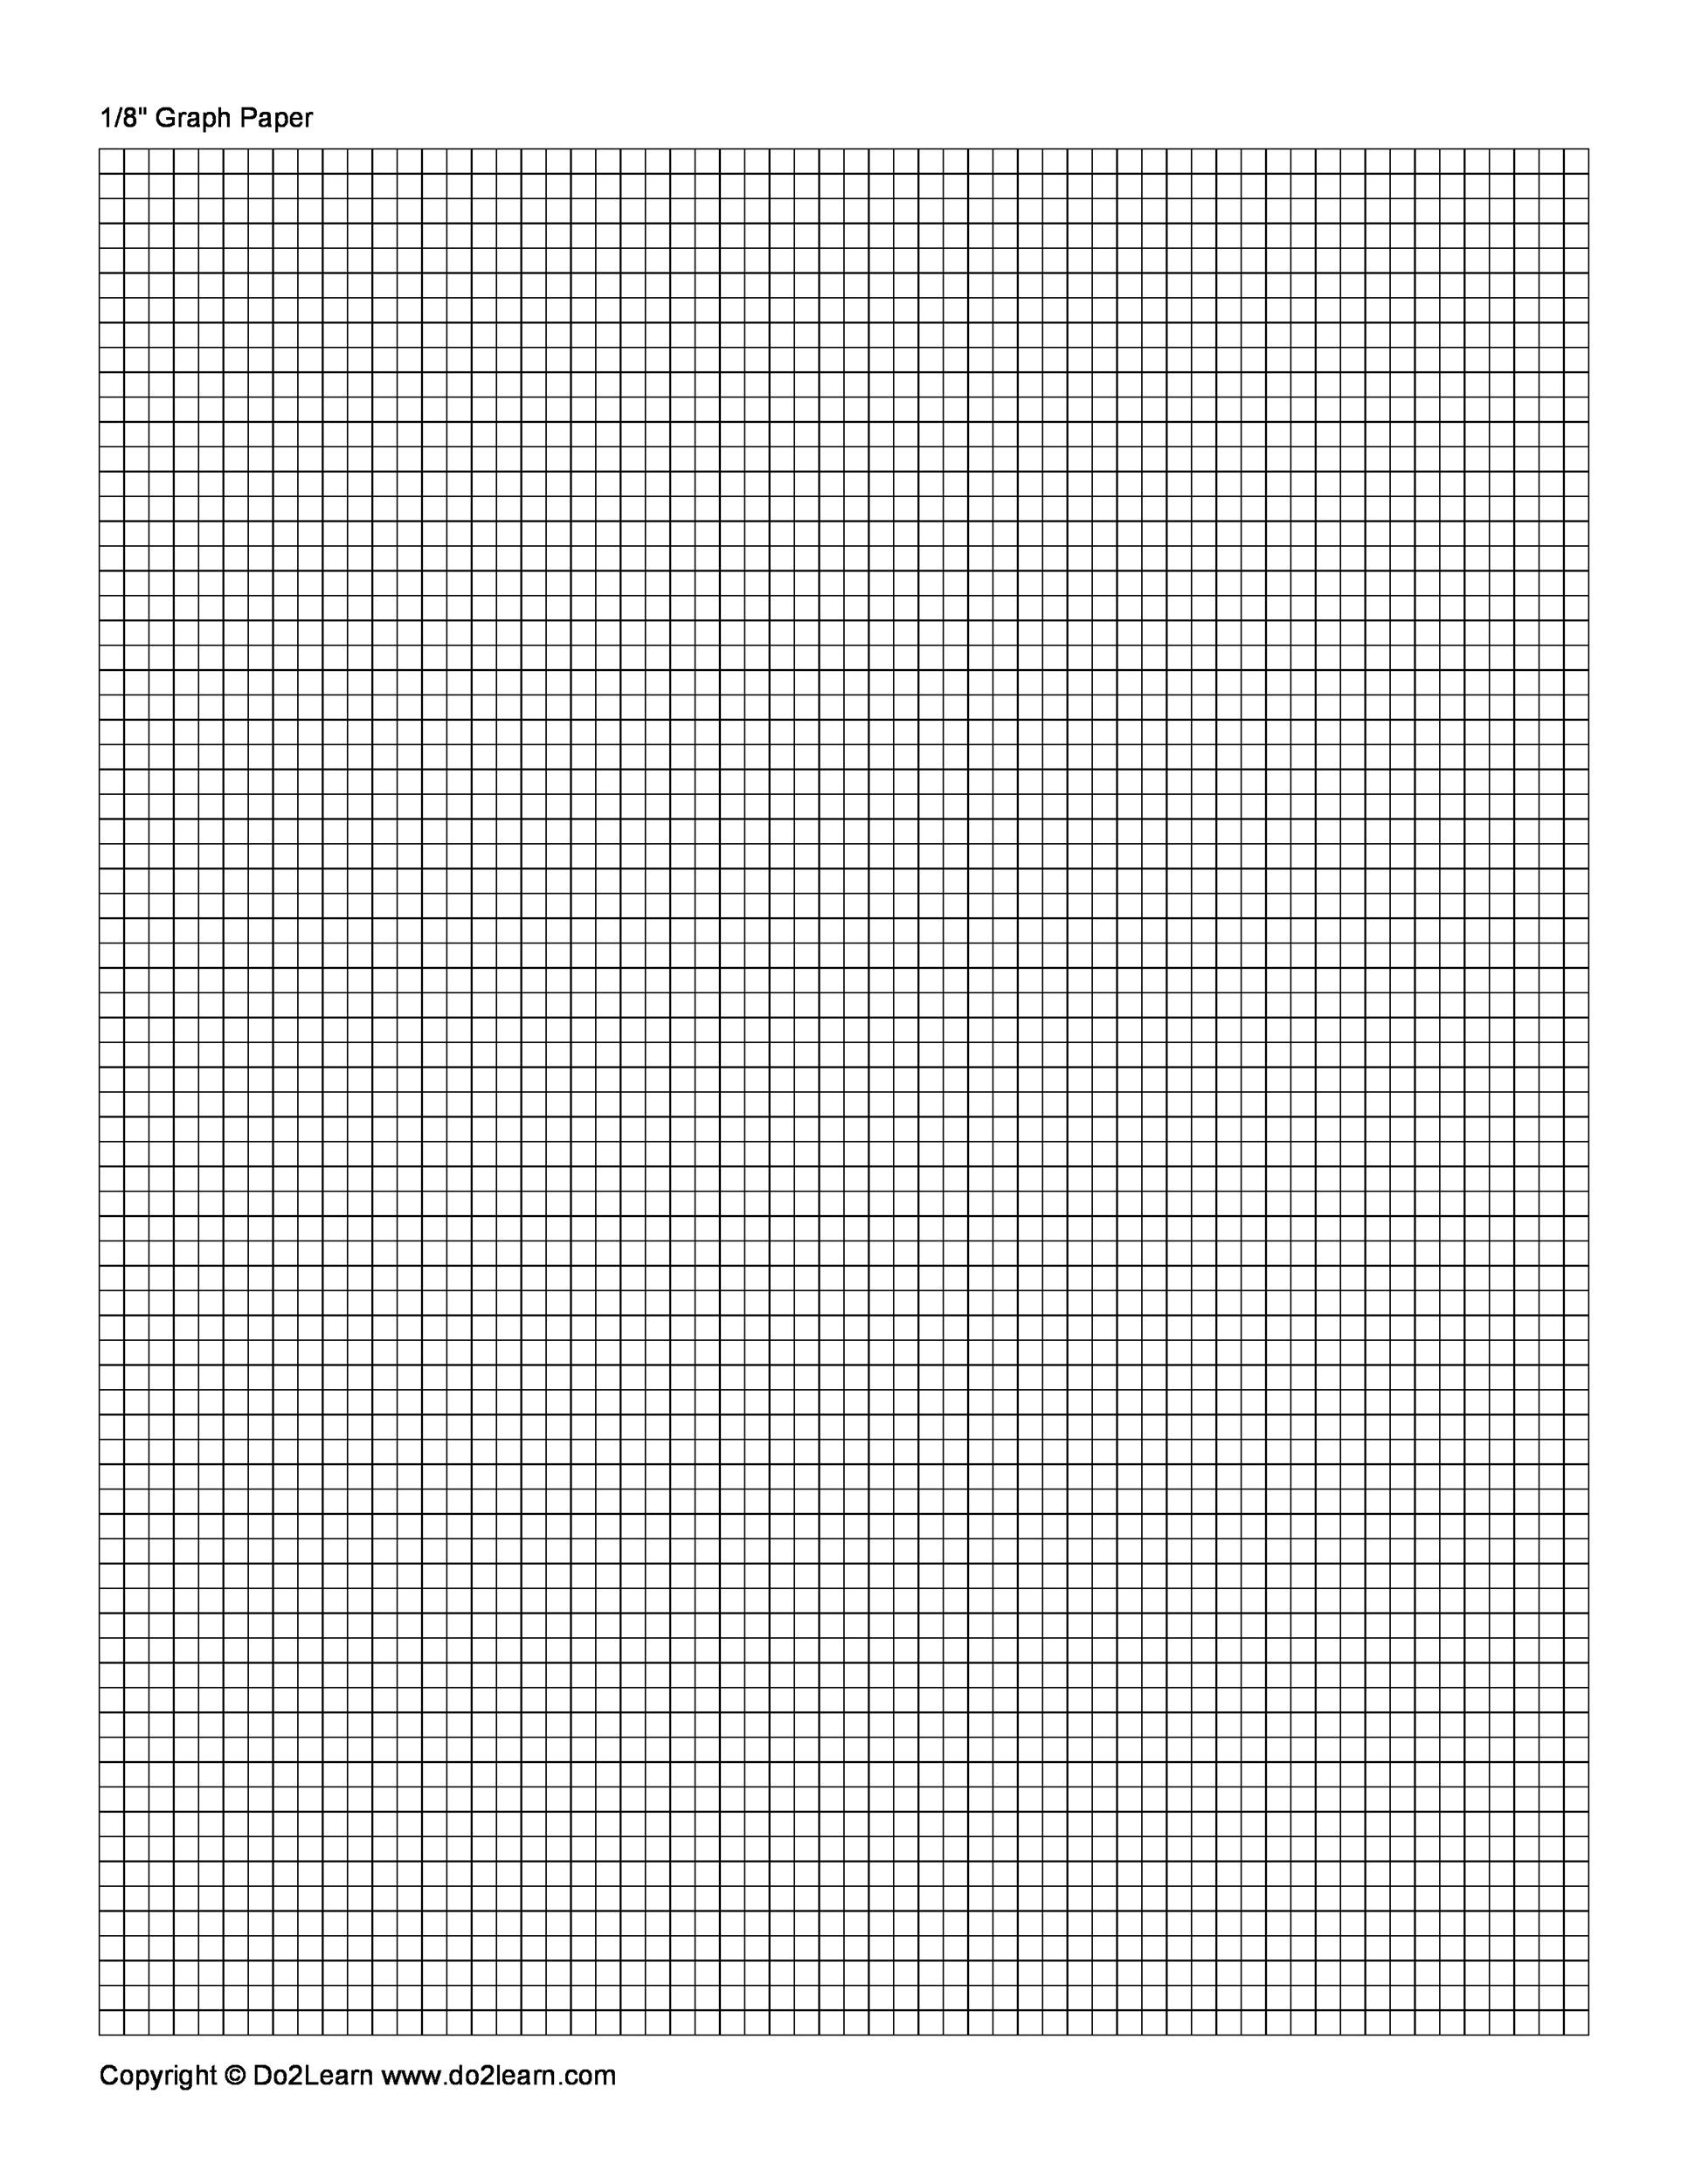 worksheet Graph Paper X And Y Axis 30 free printable graph paper templates word pdf template lab 01